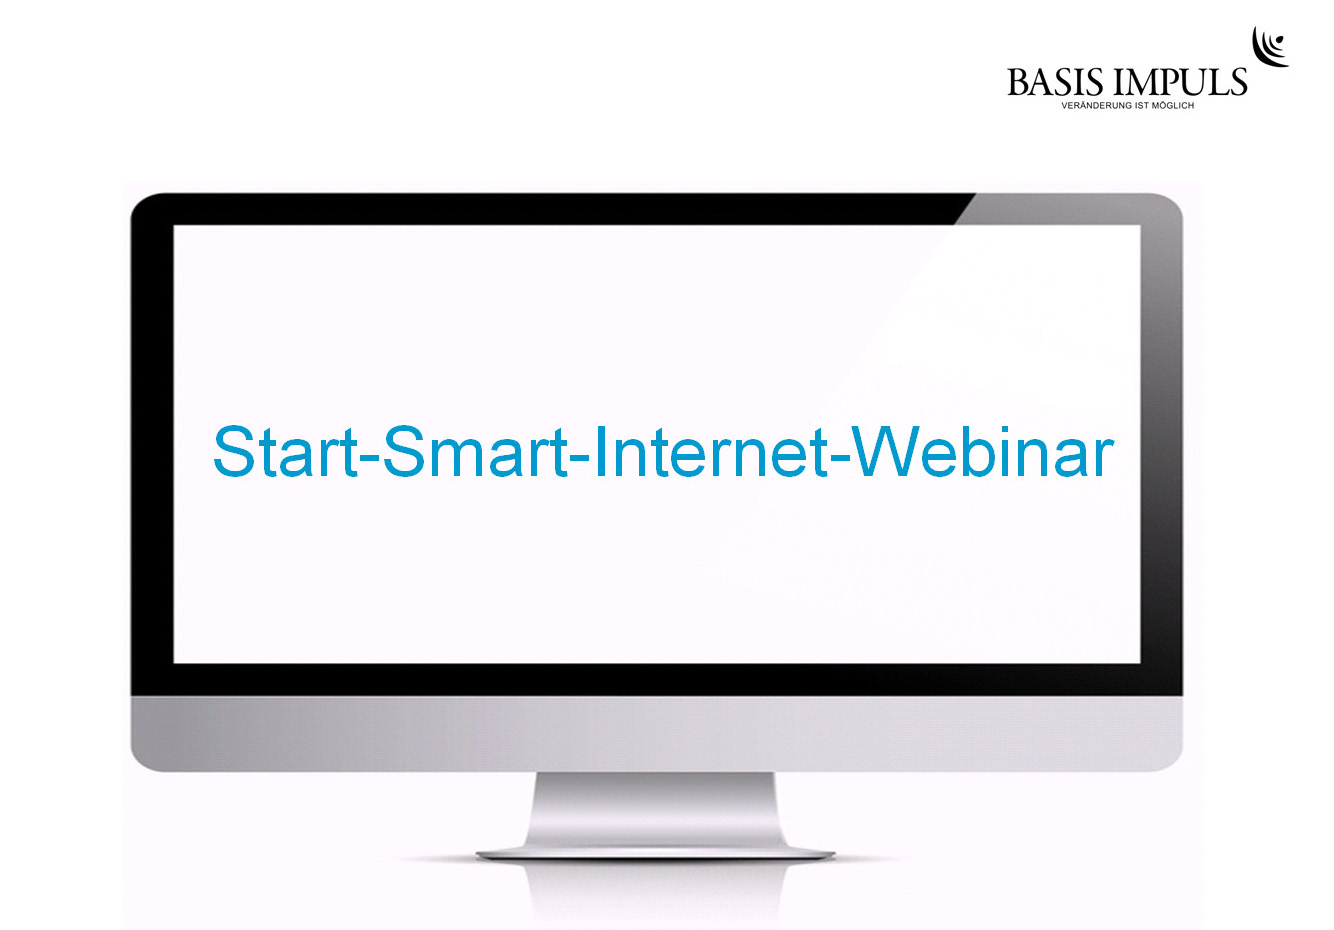 Empower Network - Start Smart Internet Kurs von Basisimpuls